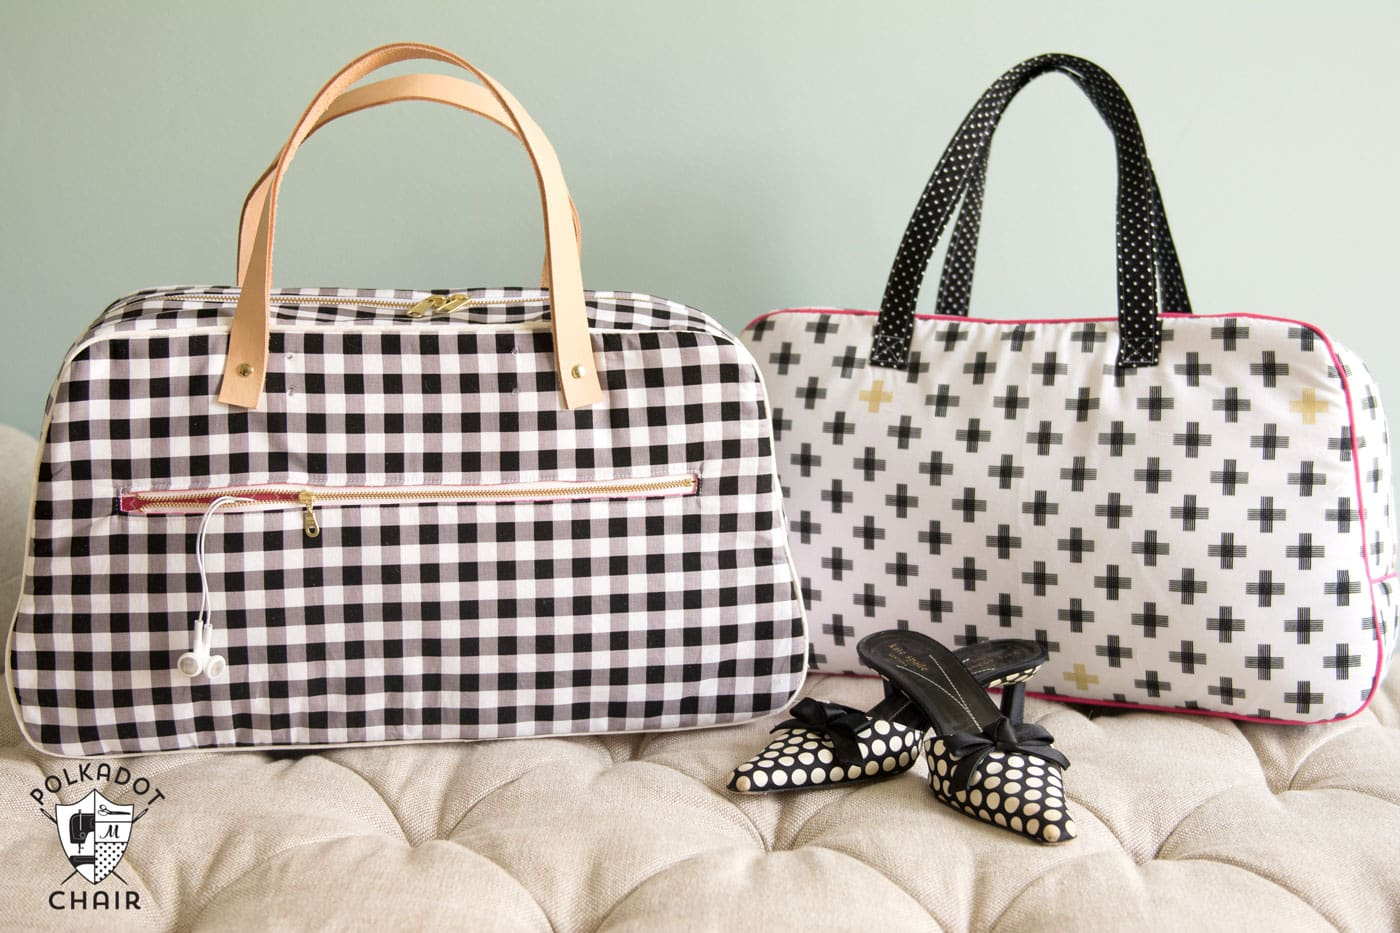 Refreshed retro travel bag sewing pattern the polka dot chair retro travel bag sewing pattern by melissa mortenson makes a cute weekend bag and can jeuxipadfo Image collections